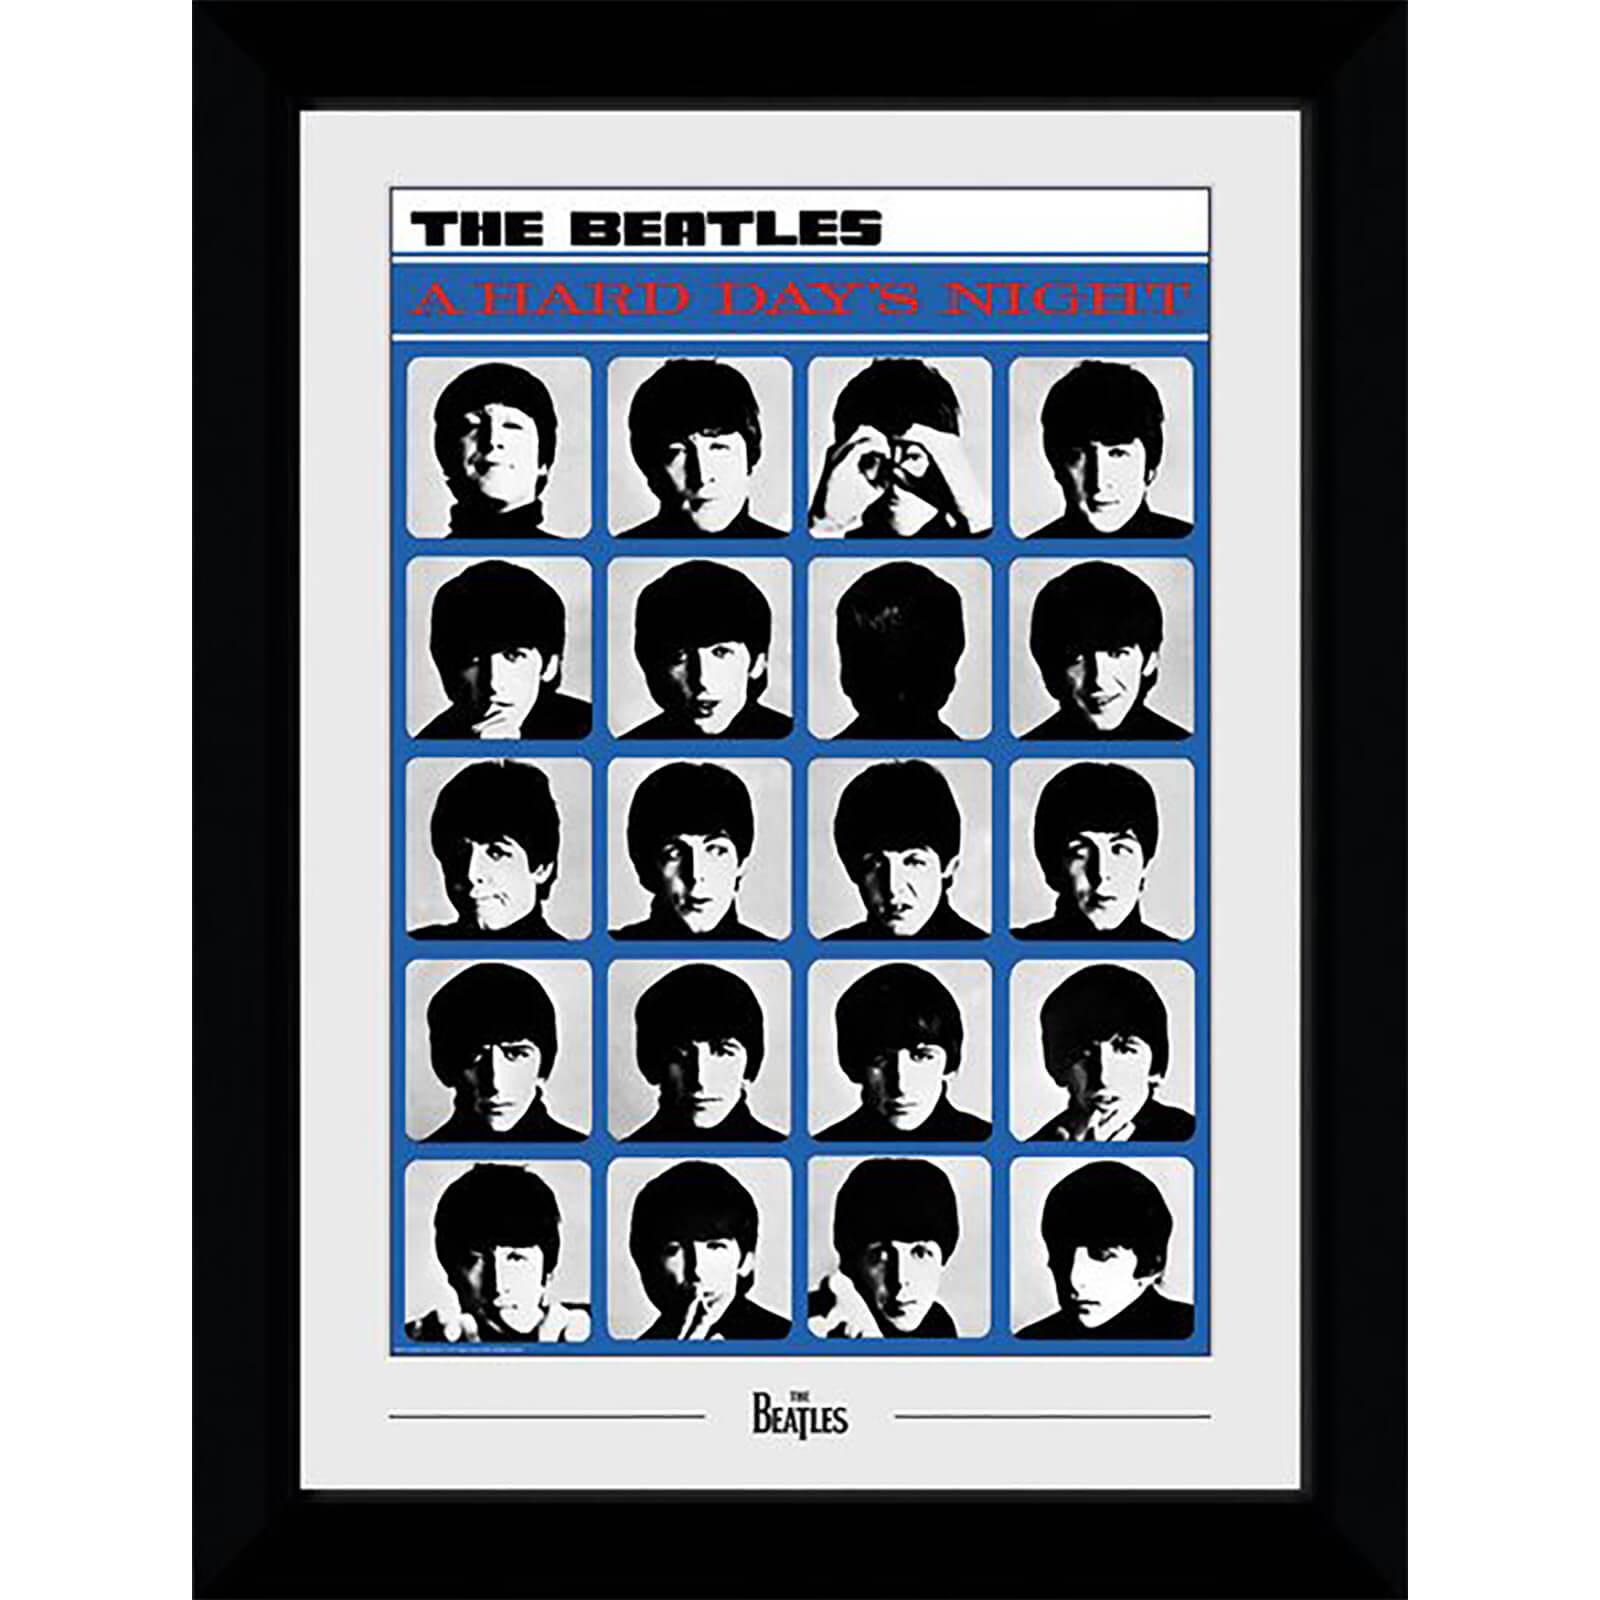 The Beatles Hard Days Night Collector